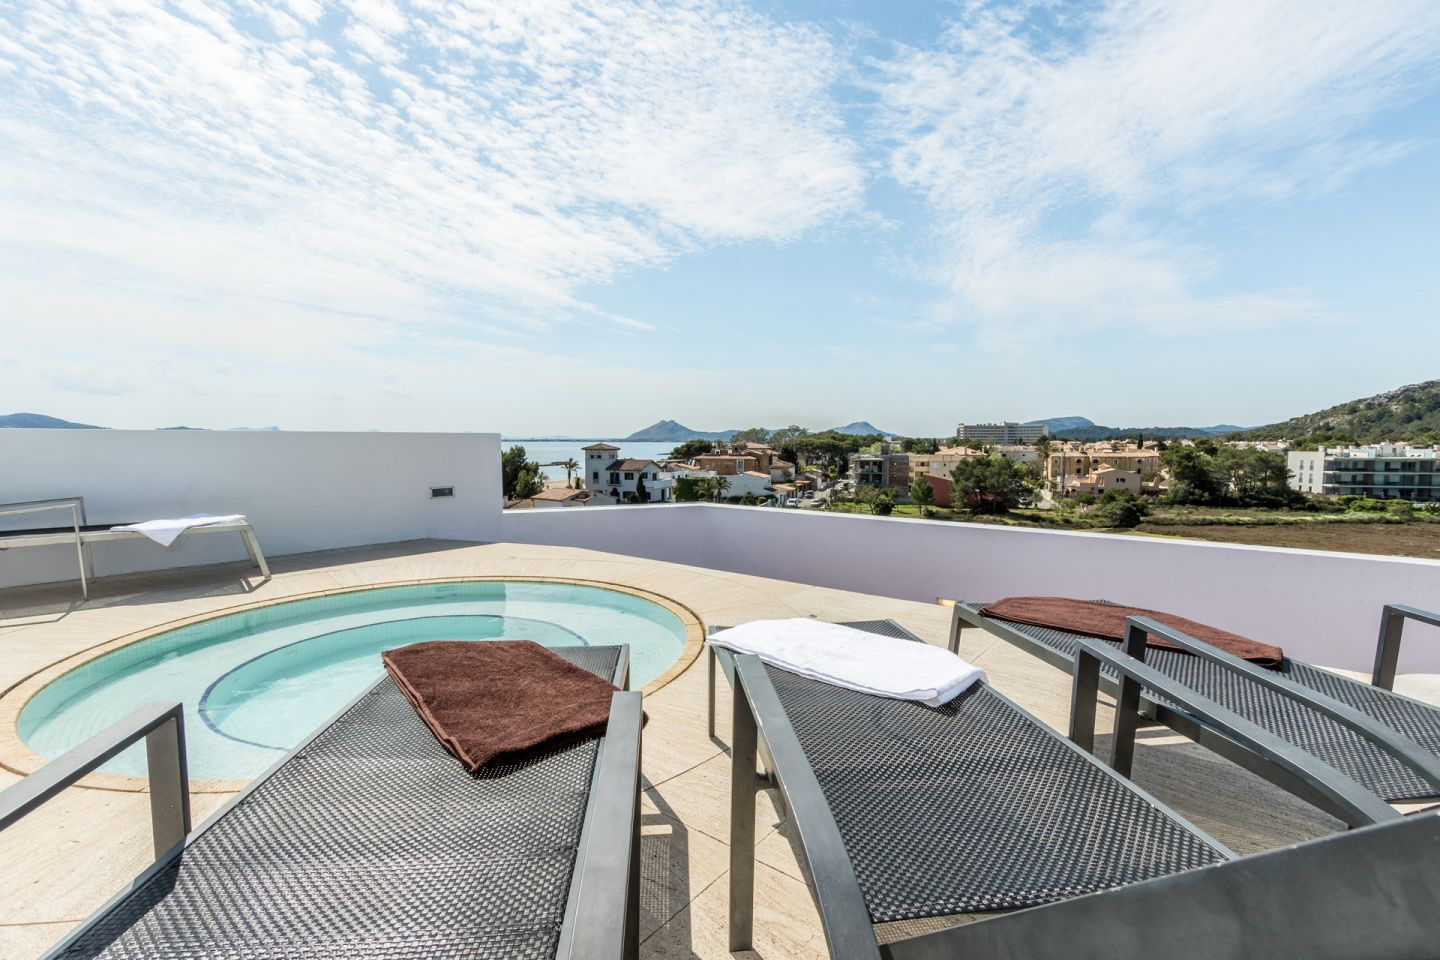 3 Bed Penthouse for sale in PUERTO POLLENSA 8